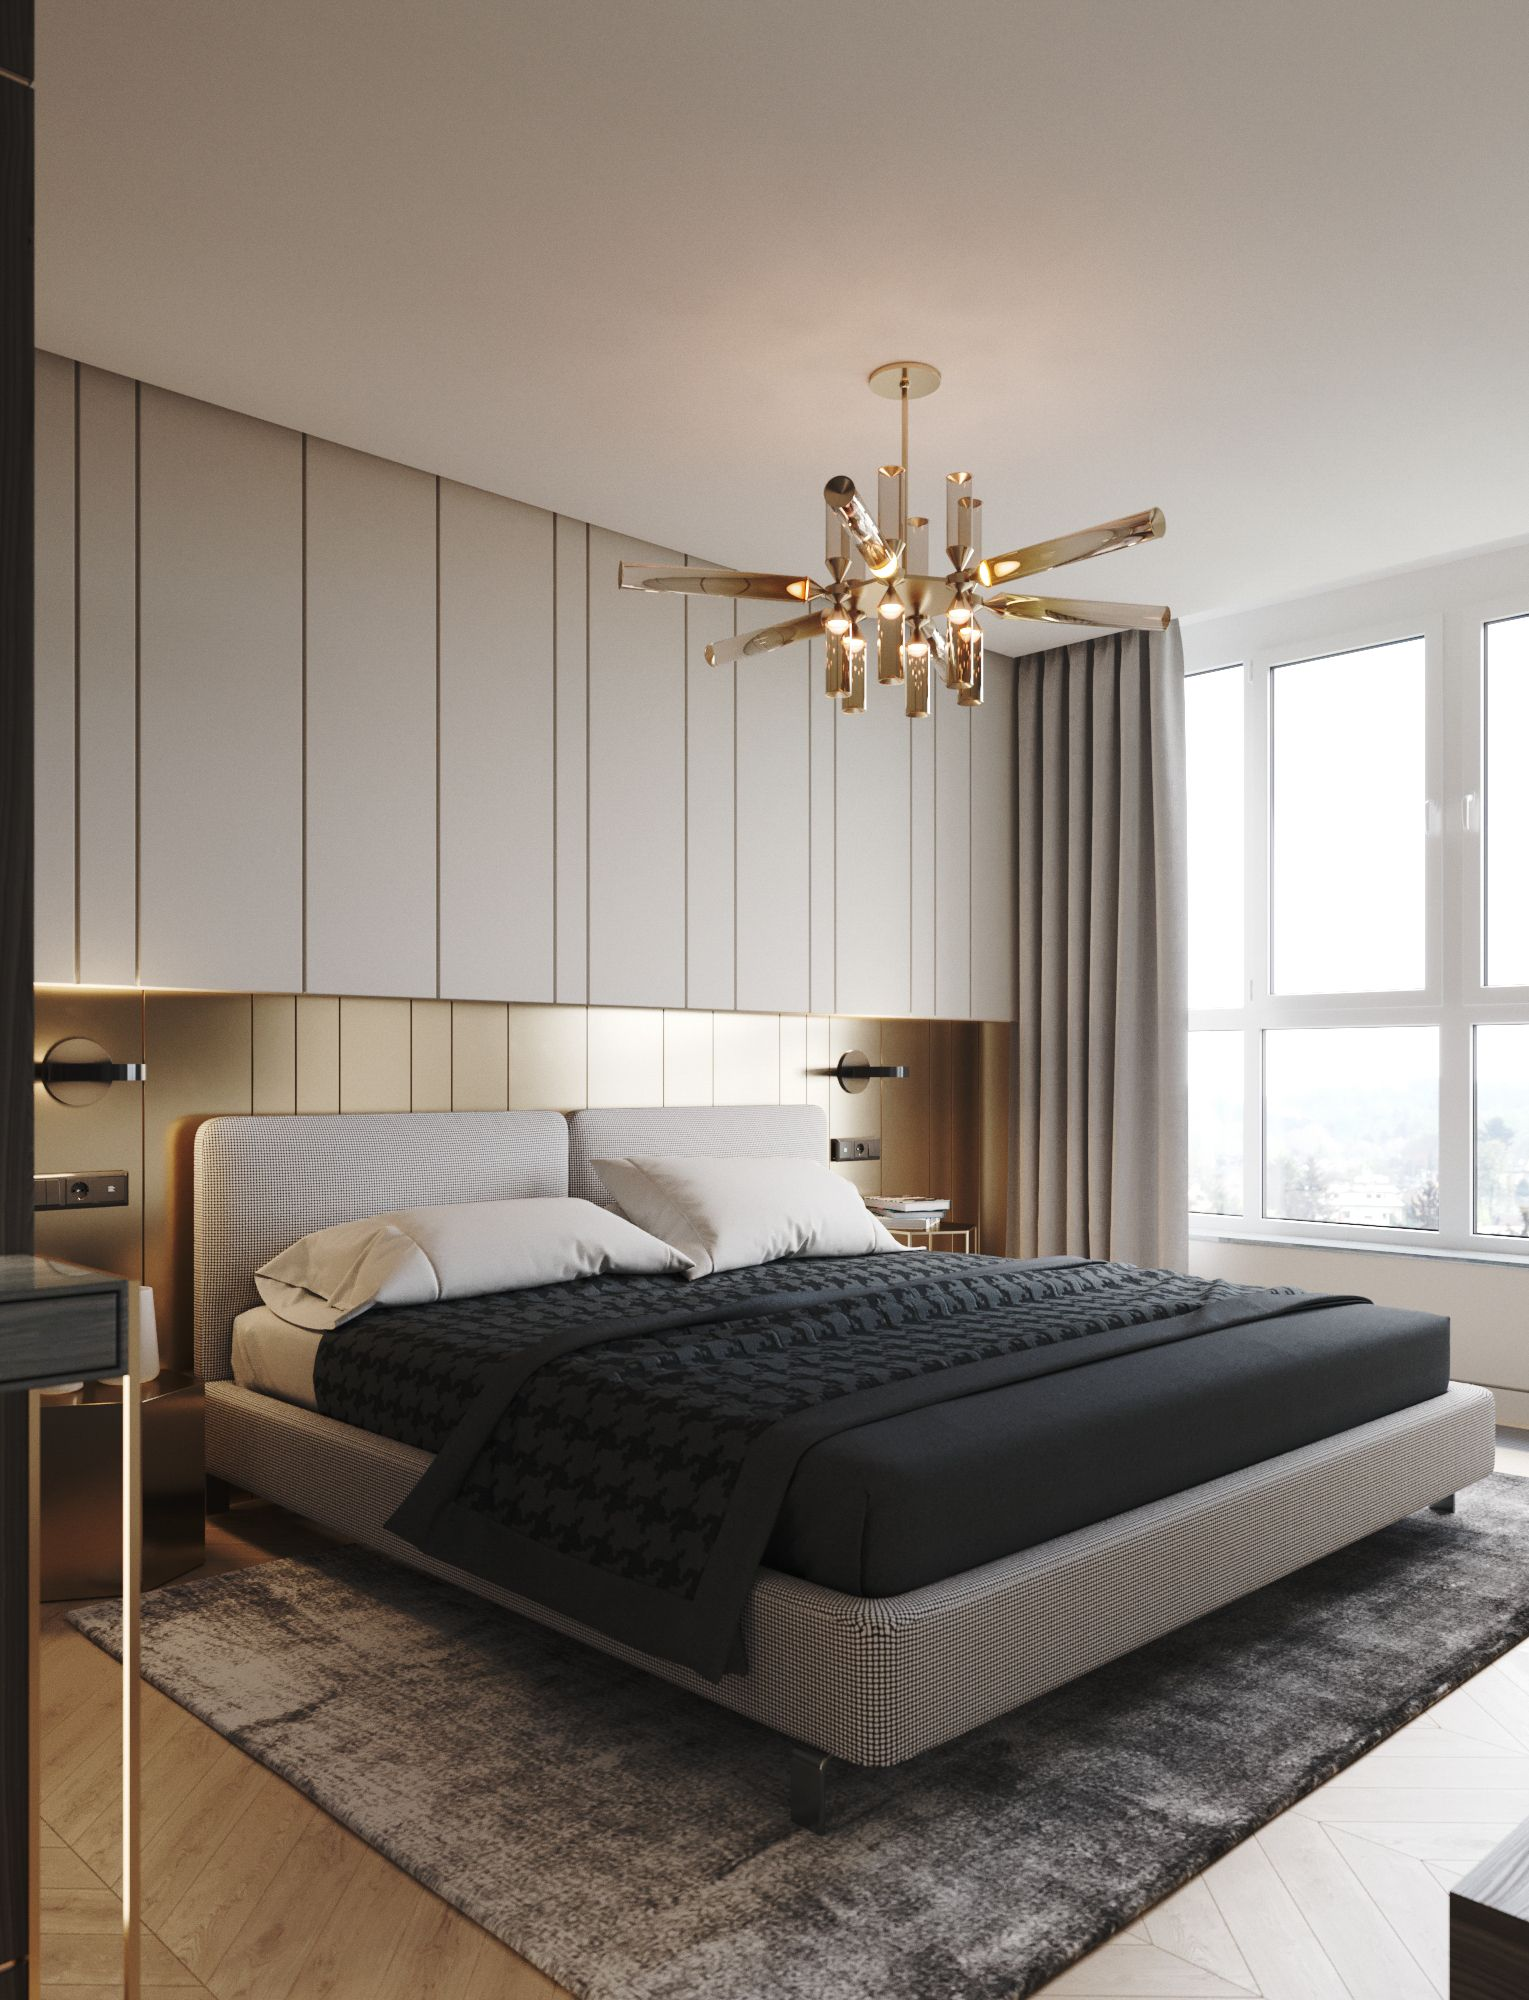 Bedroom Design in a Classic Style: Main Colors